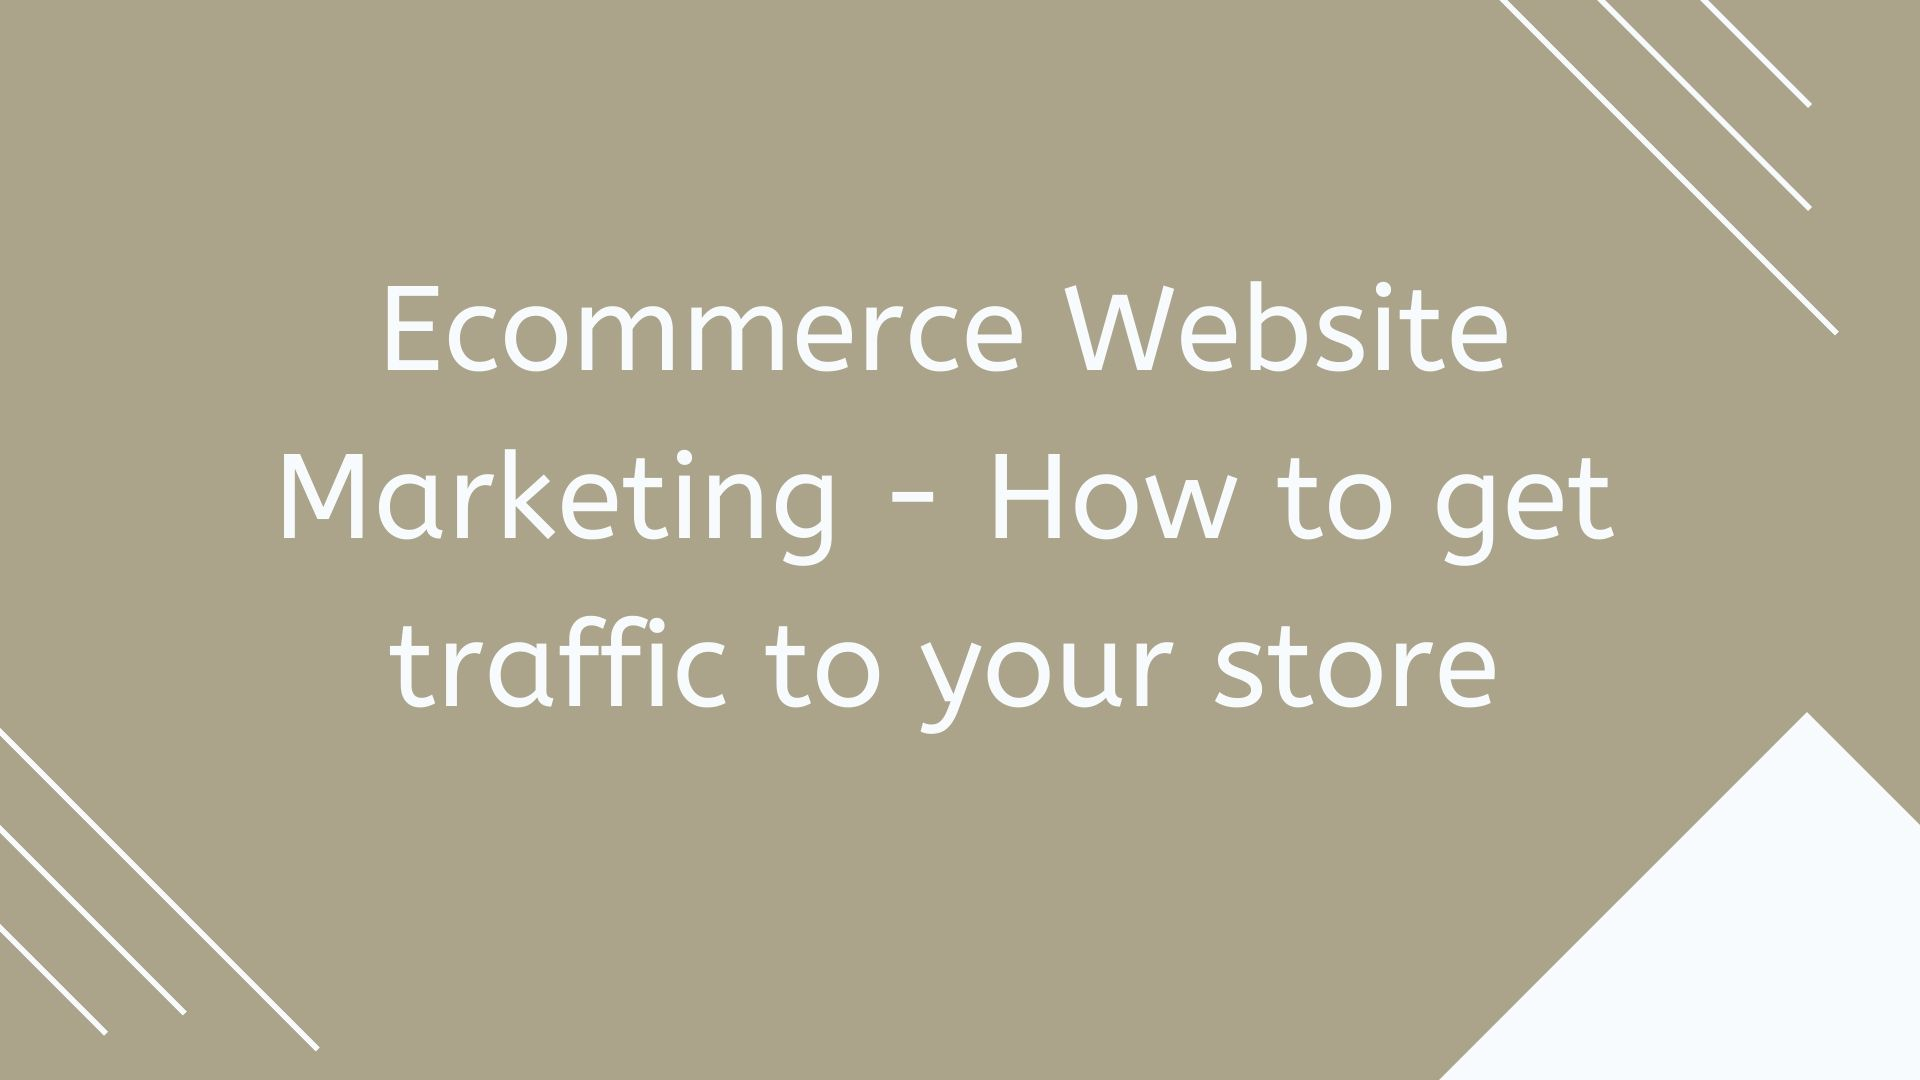 eCommerce Website Marketing - How to get traffic to your store